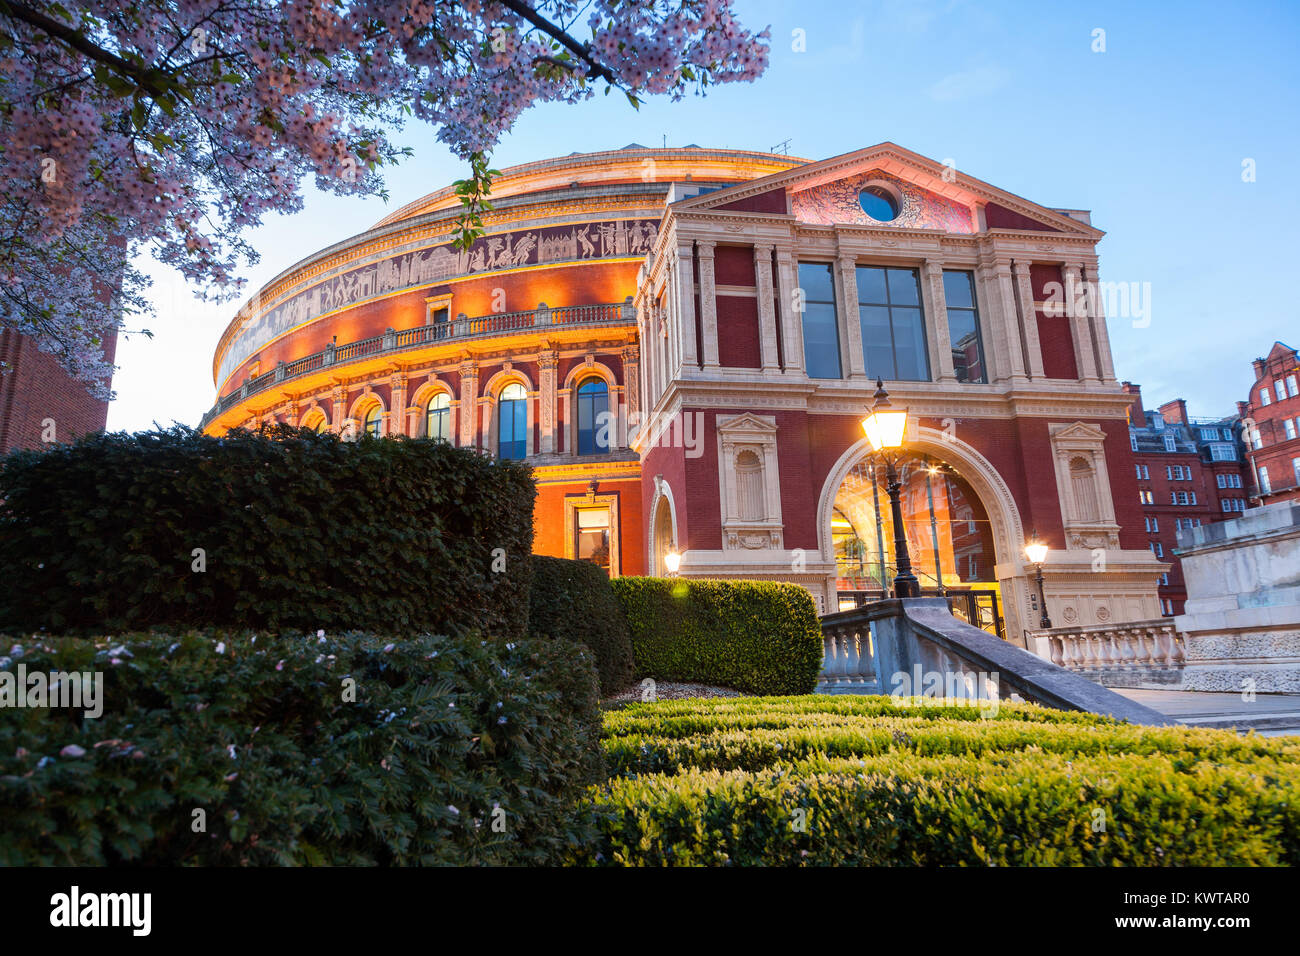 The Royal Albert Hall London, Victorian time architecture square Stock Photo